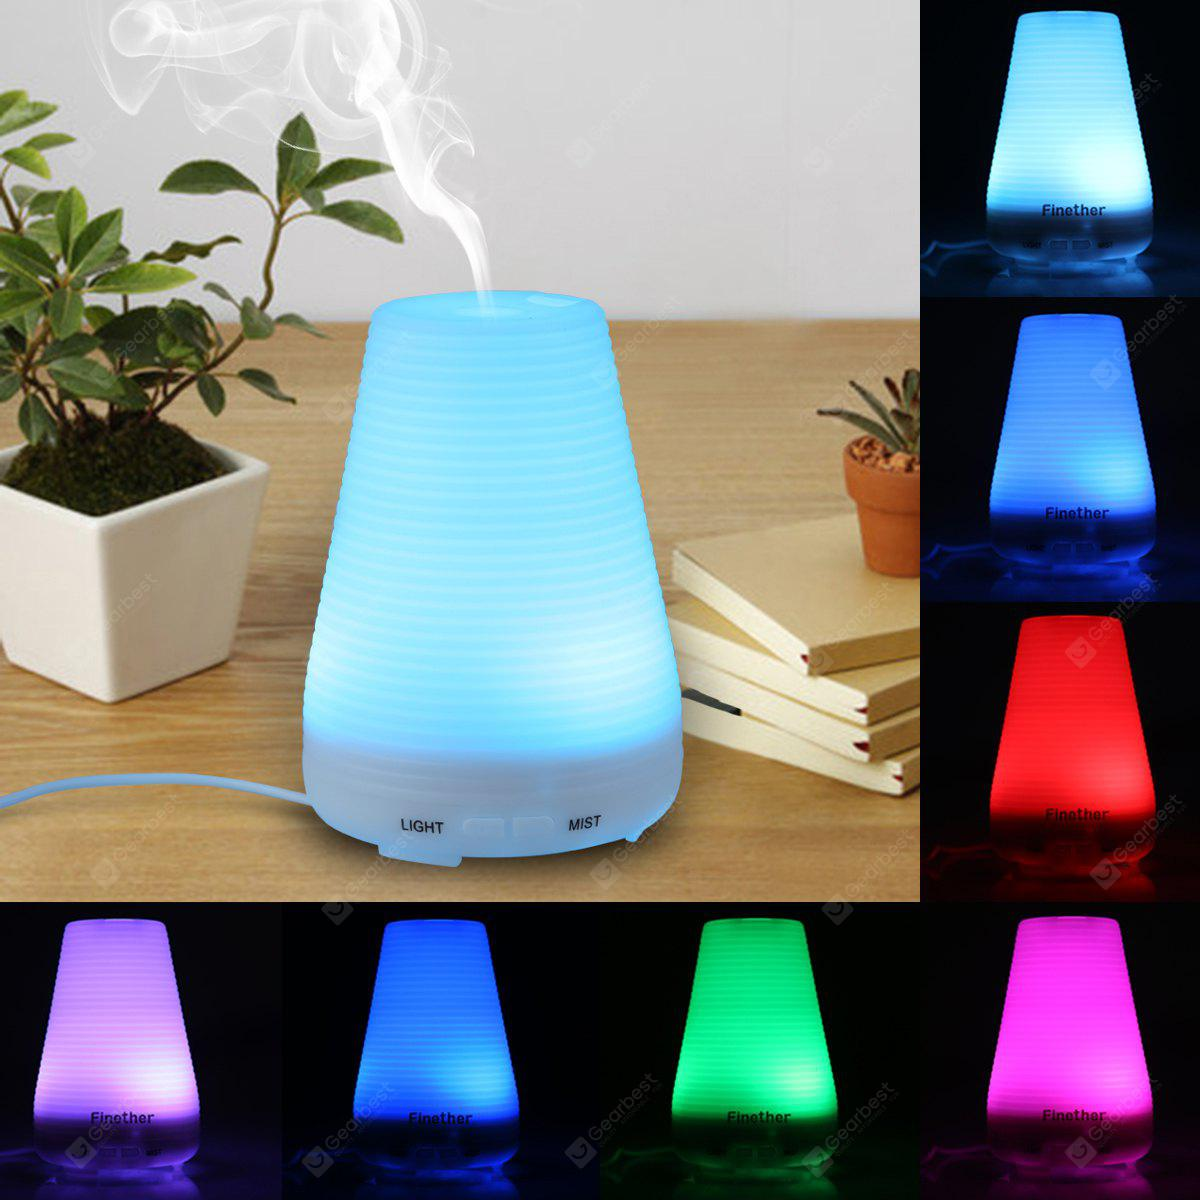 Finether Aroma Diffuser Ultrasonic Humidifier Air Mist Aromatherapy Purifier 100ML FH-001 UK